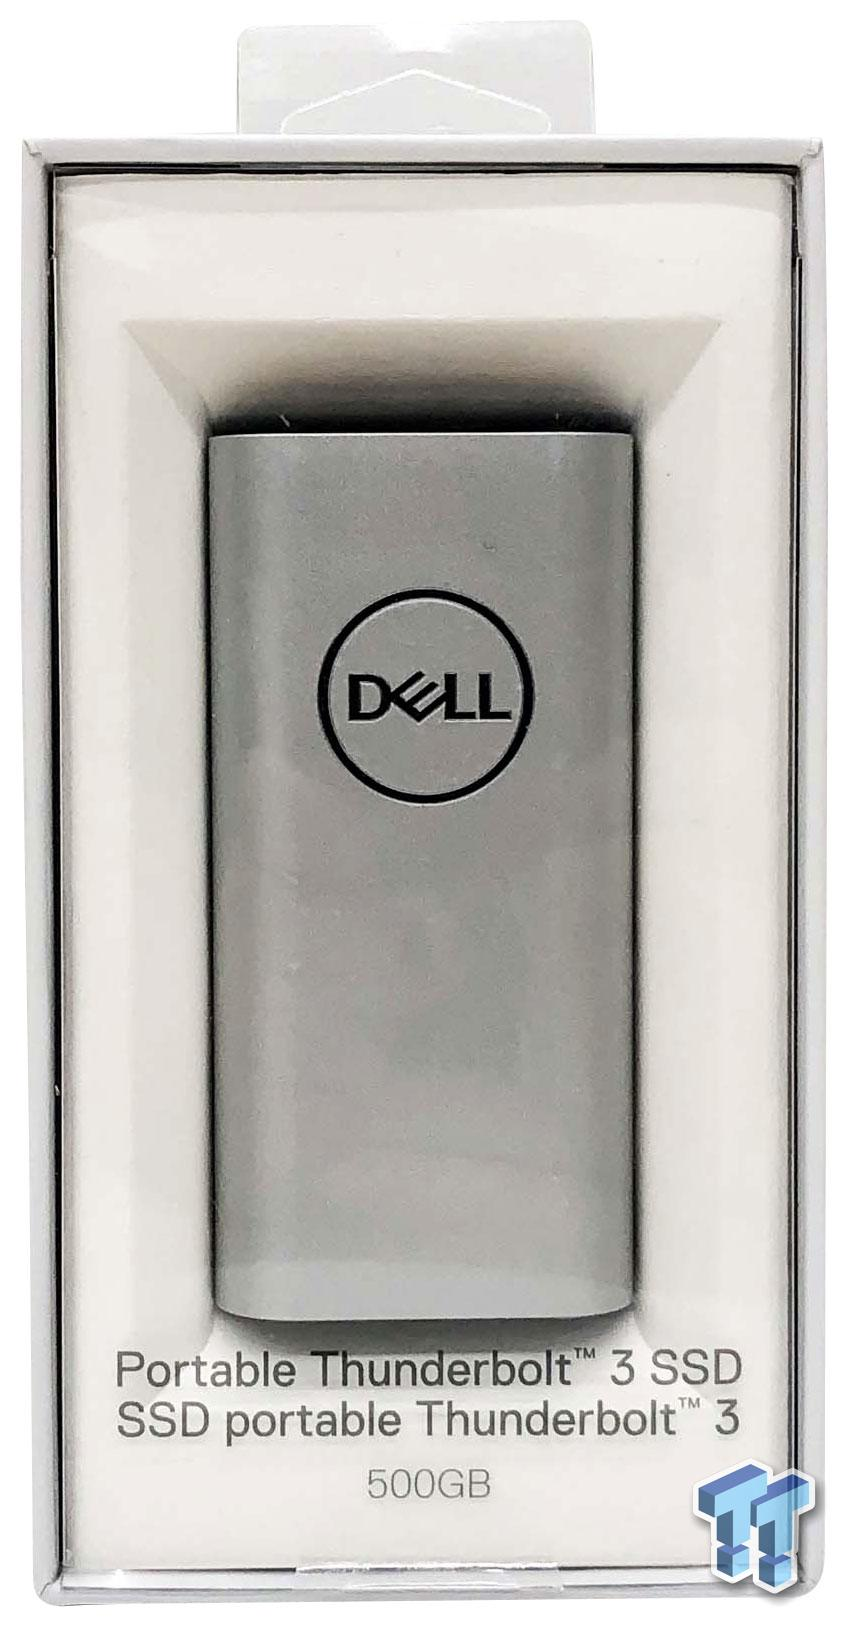 Dell Portable Thunderbolt 3 SSD Review